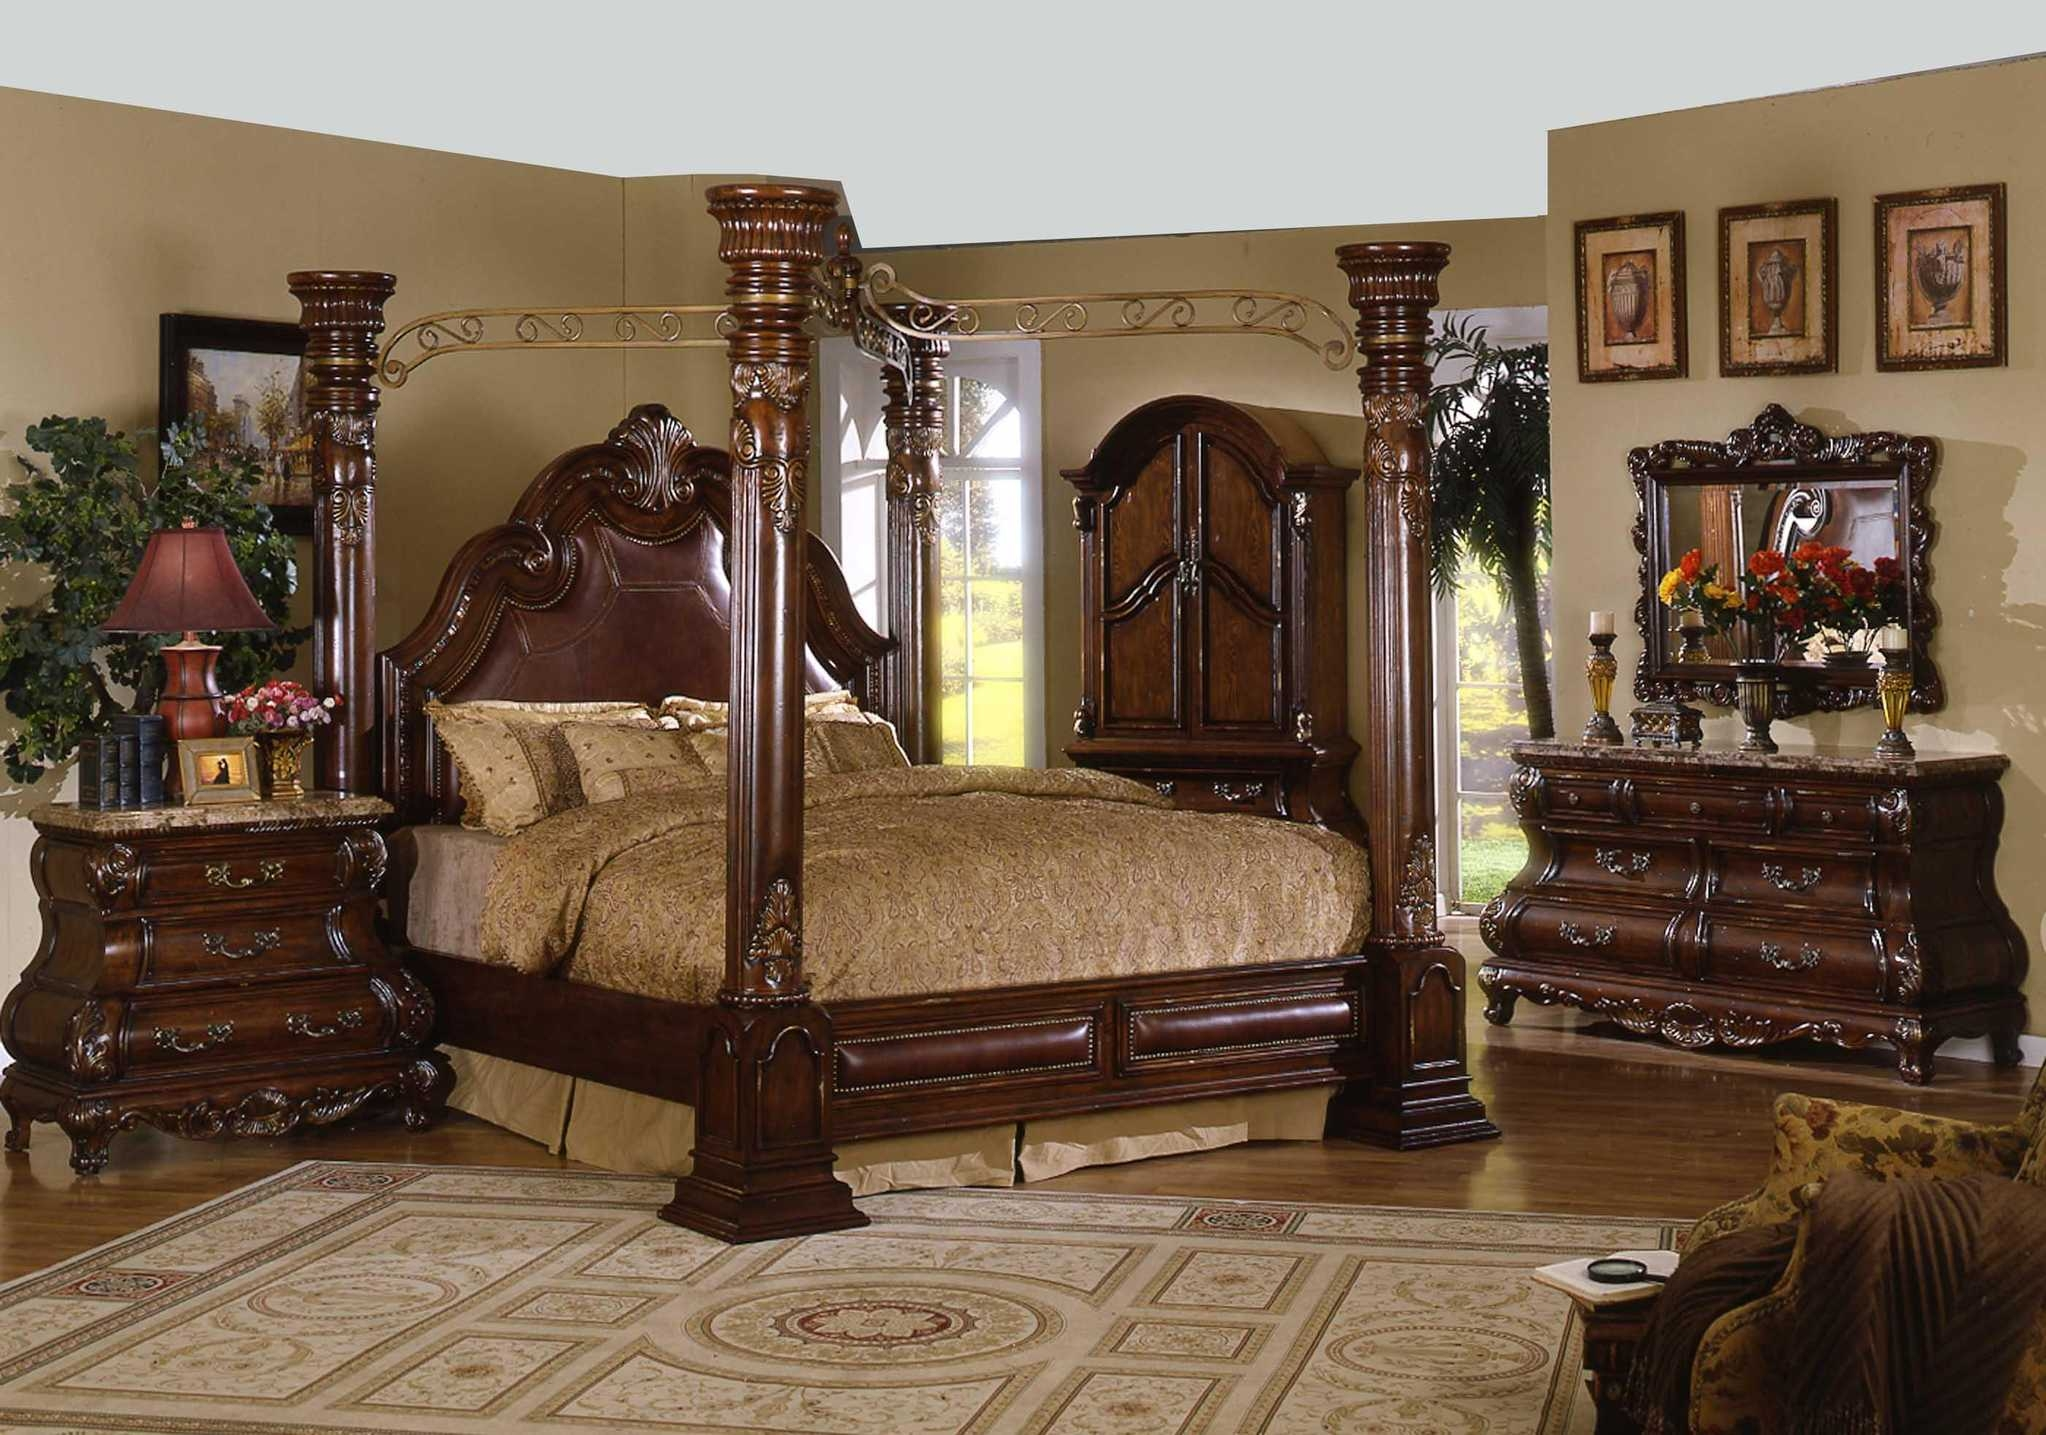 Wooden Bed Frames With Postsmarvelous ideas for build a wood canopy bed frame iron canopy